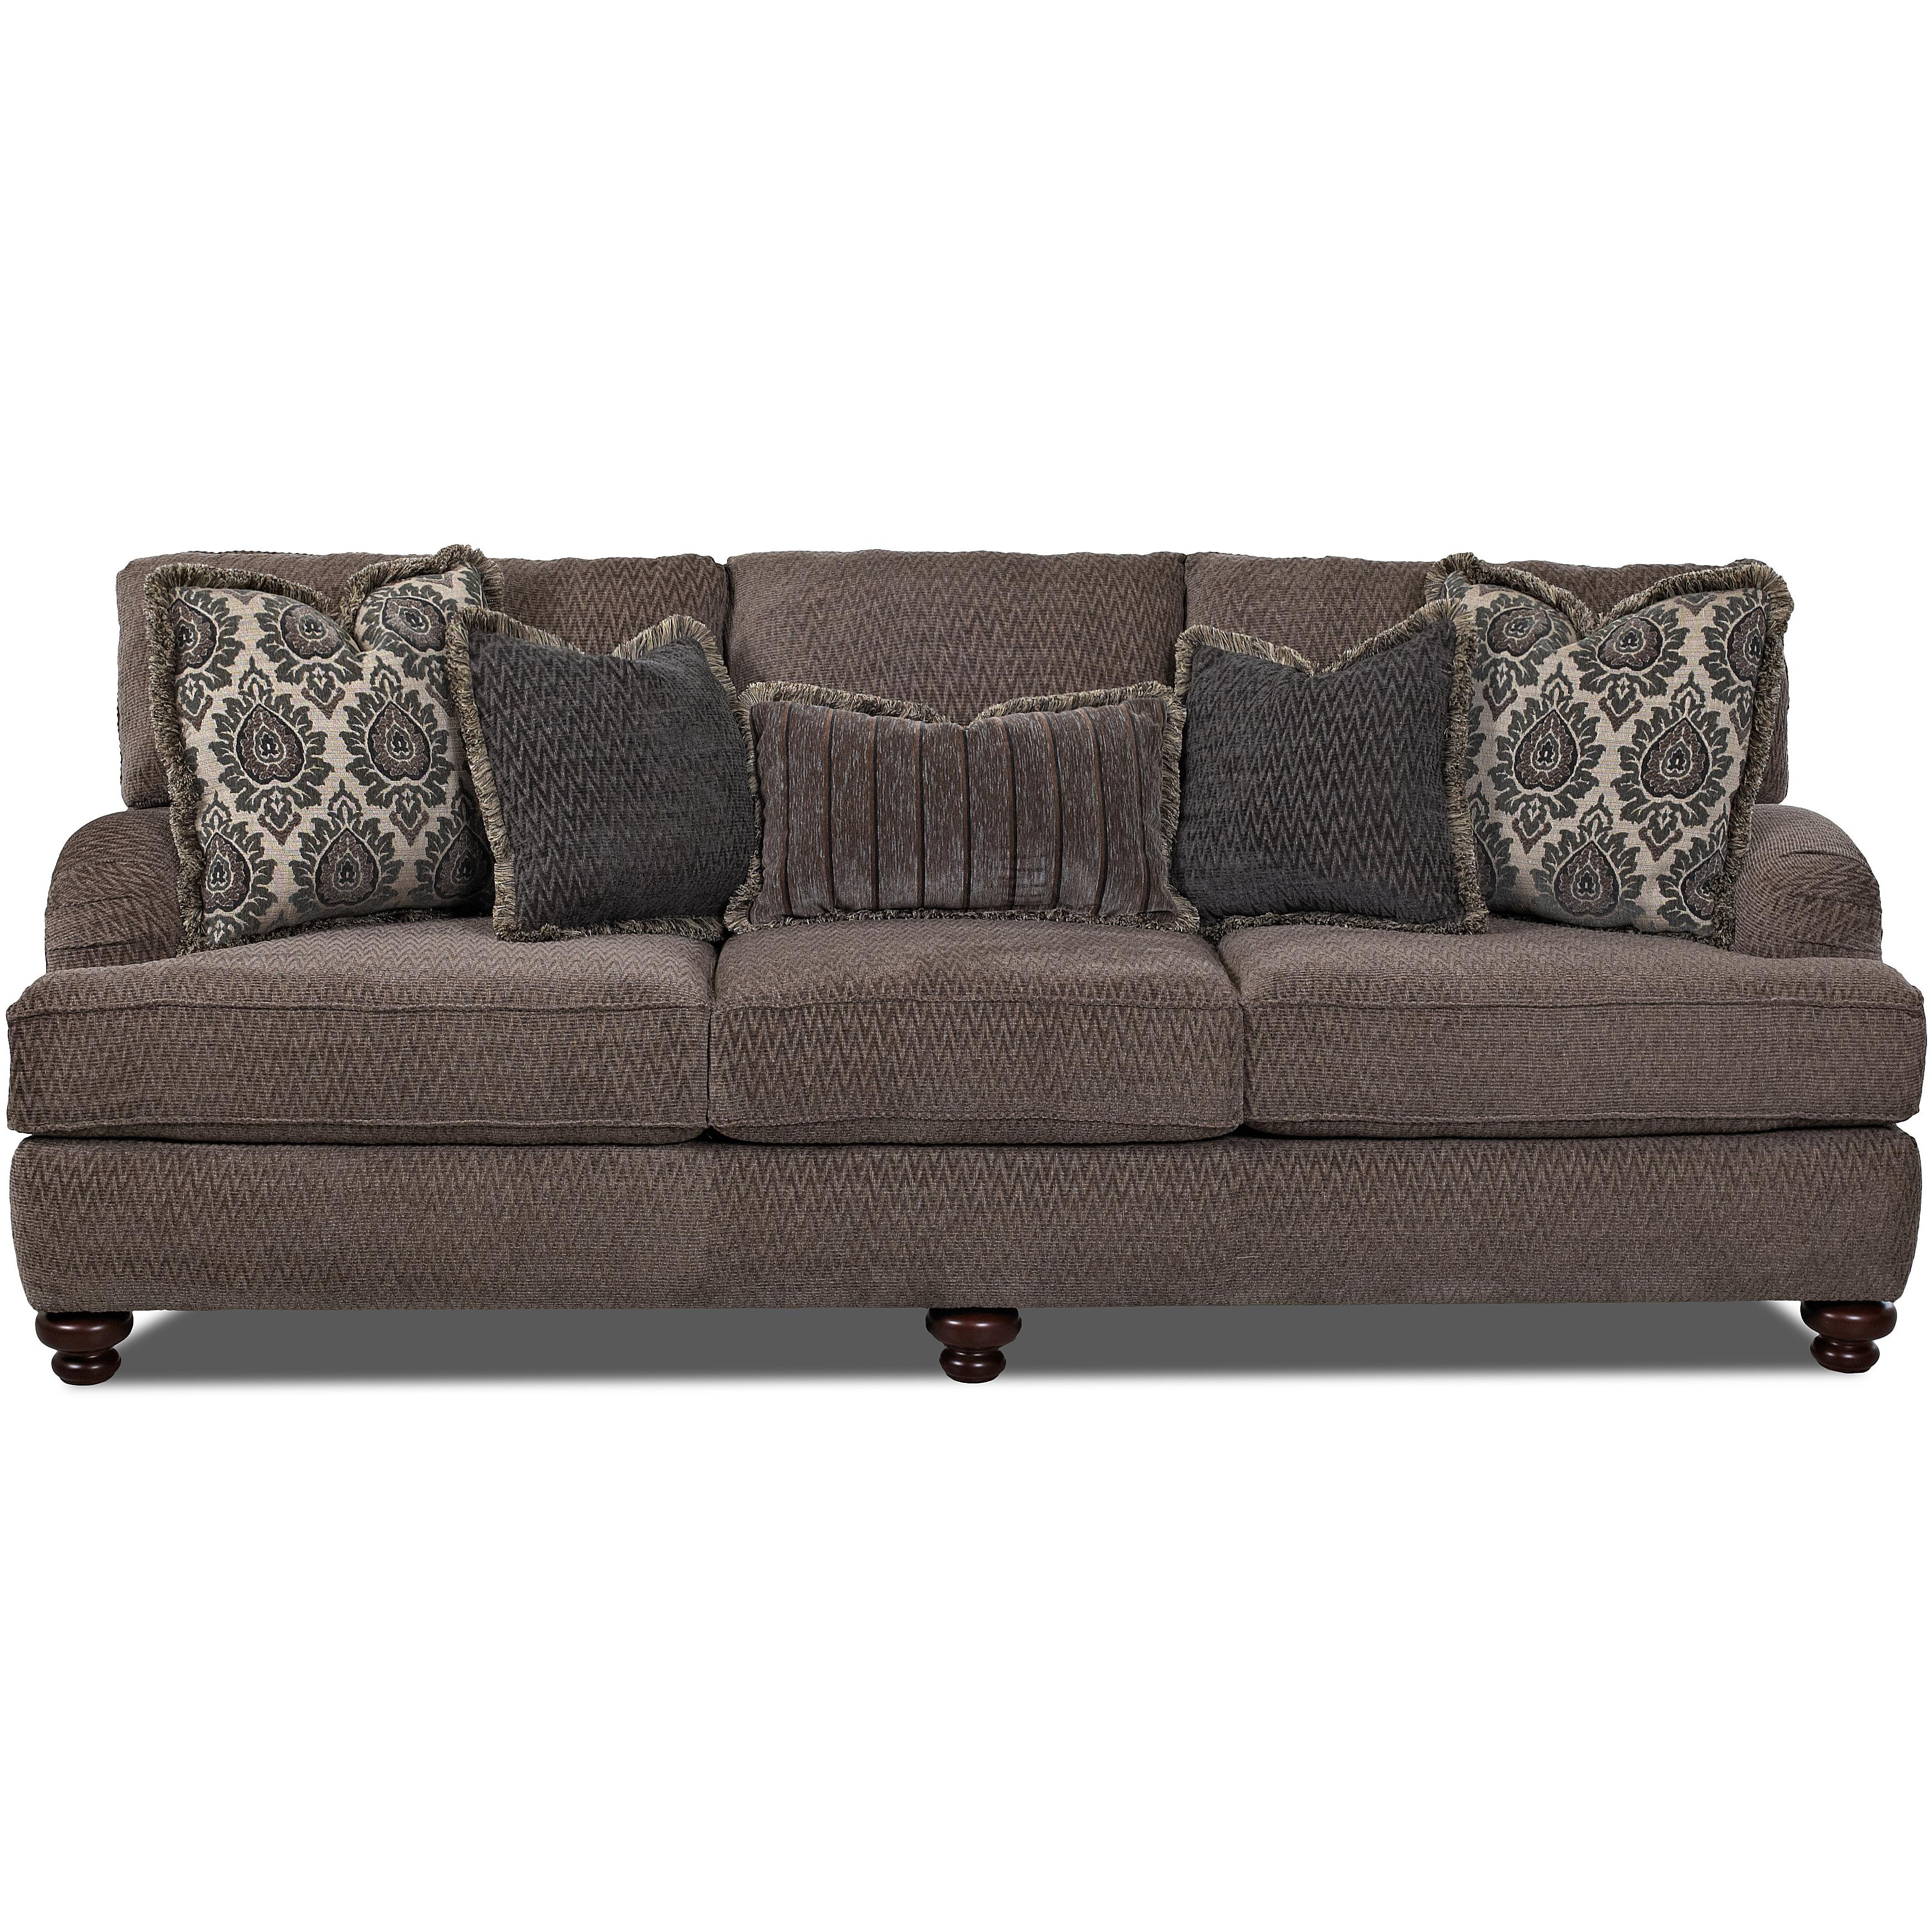 Traditional Sofa With Turned Feet By Klaussner Wolf And Gardiner Wolf Furniture